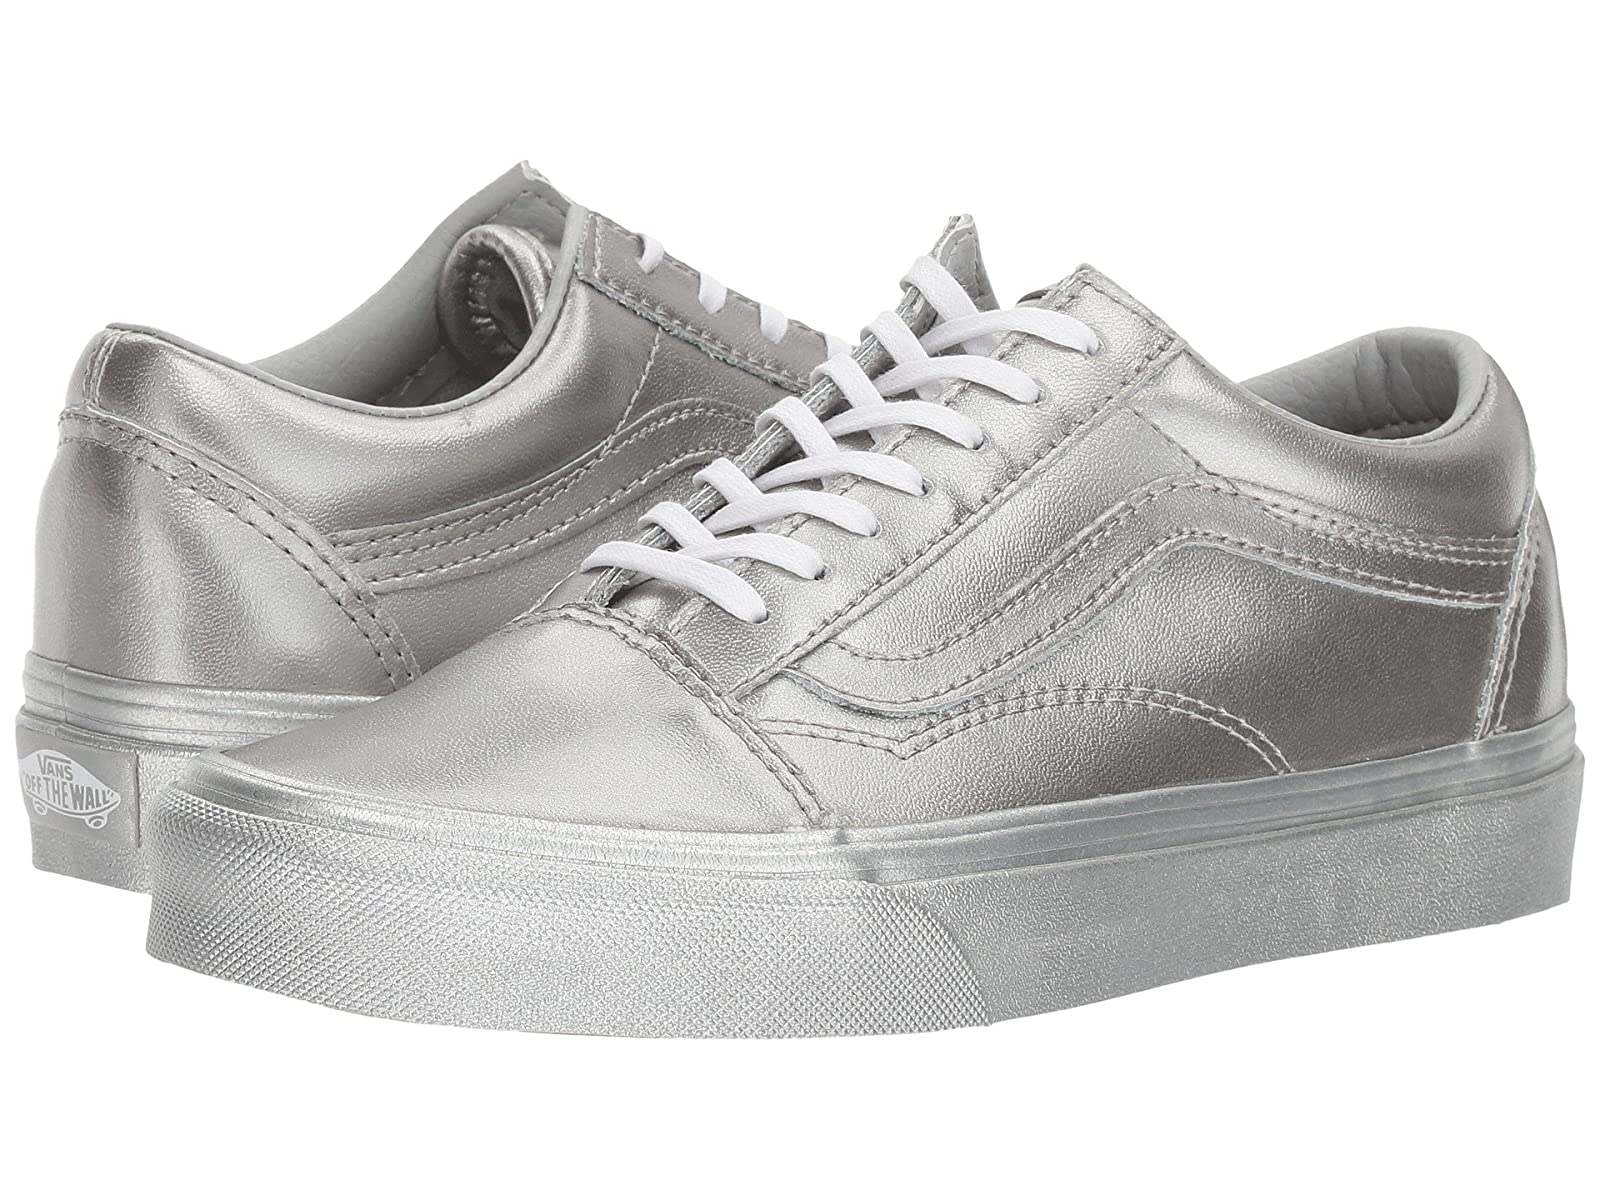 Vans Old Skool™Cheap and distinctive eye-catching shoes